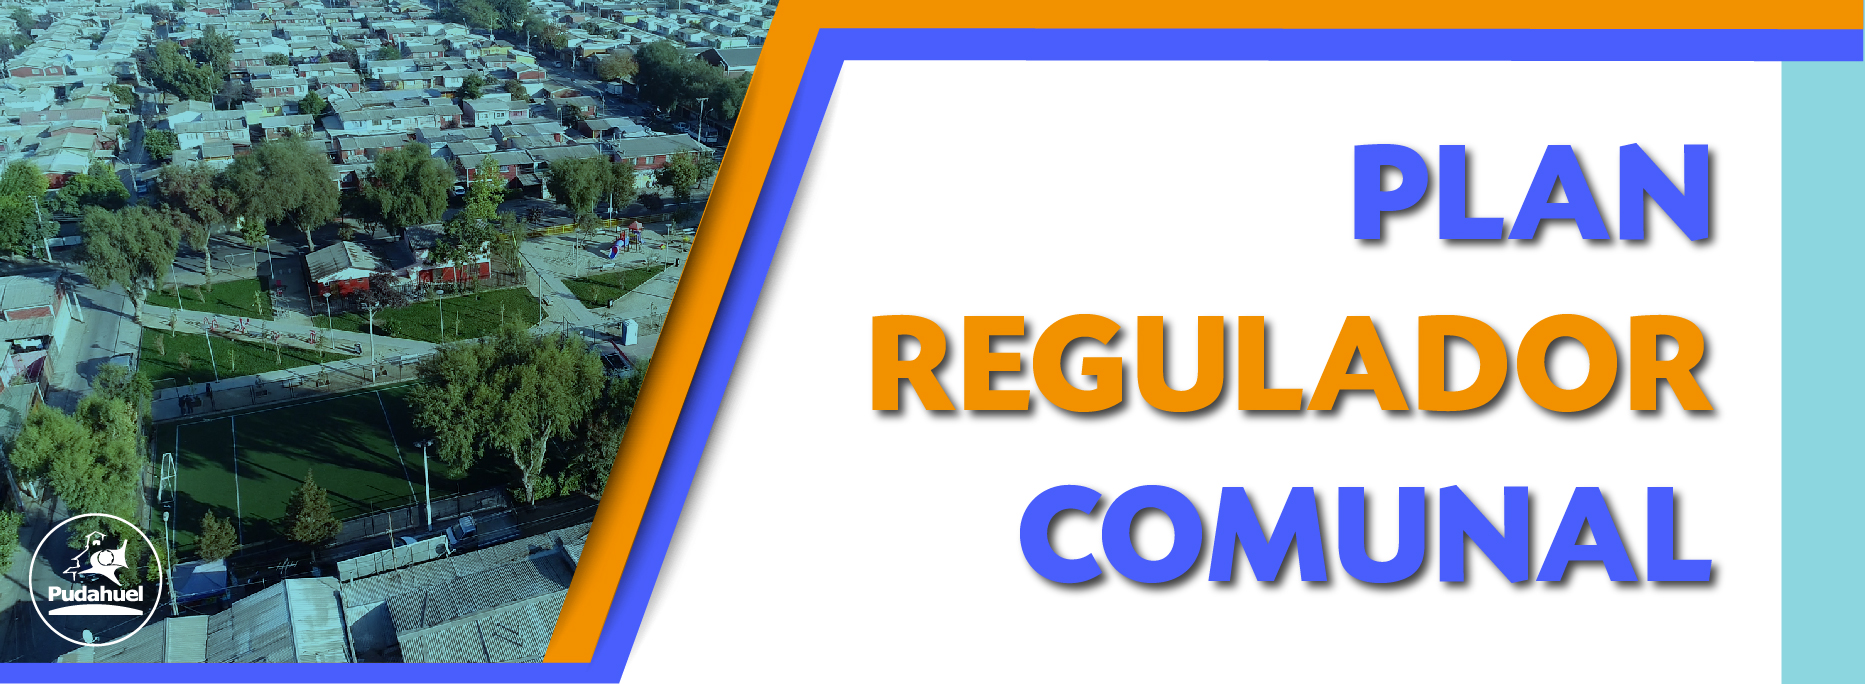 PLan Regulador Comunal Vigente